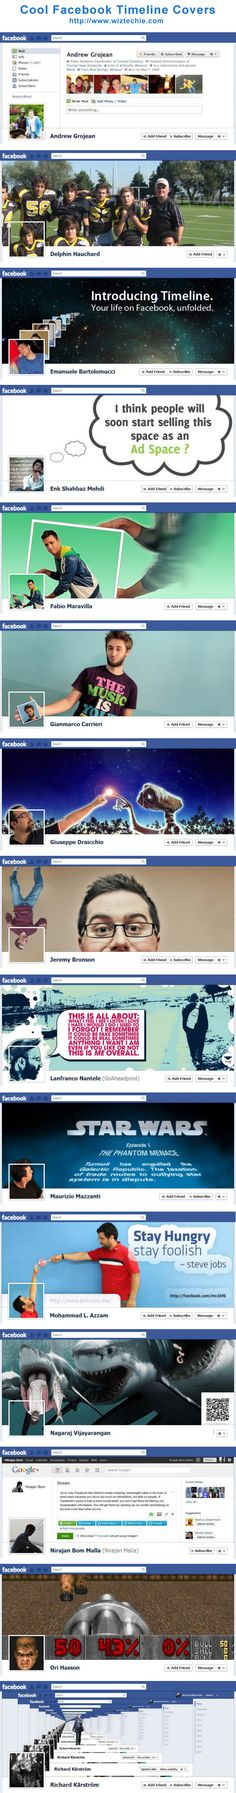 I wanna make an awesome timeline cover like these! Best Facebook Cover Photos, Facebook Timeline Covers, Best Marketing Campaigns, Brand Name Purses, I Go Crazy, Photography Templates, Free Facebook, Social Media, Social Networks